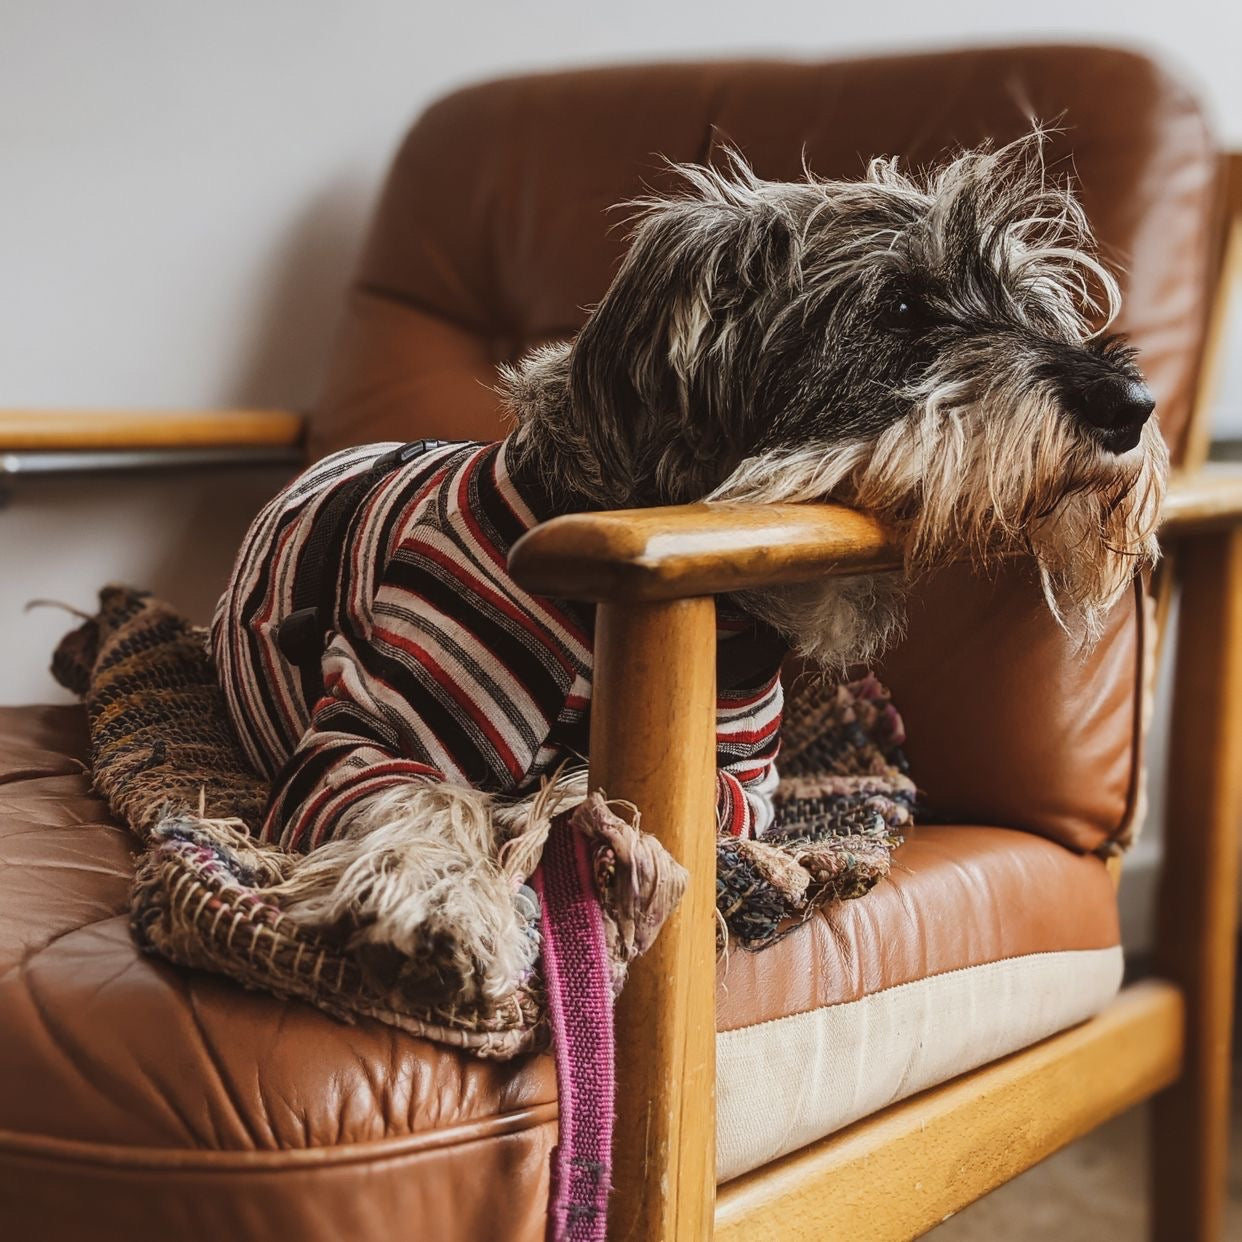 LILY THE STANDARD SCHNAUZER - NEVER TO BE SEEN WITHOUT HER COMFORT